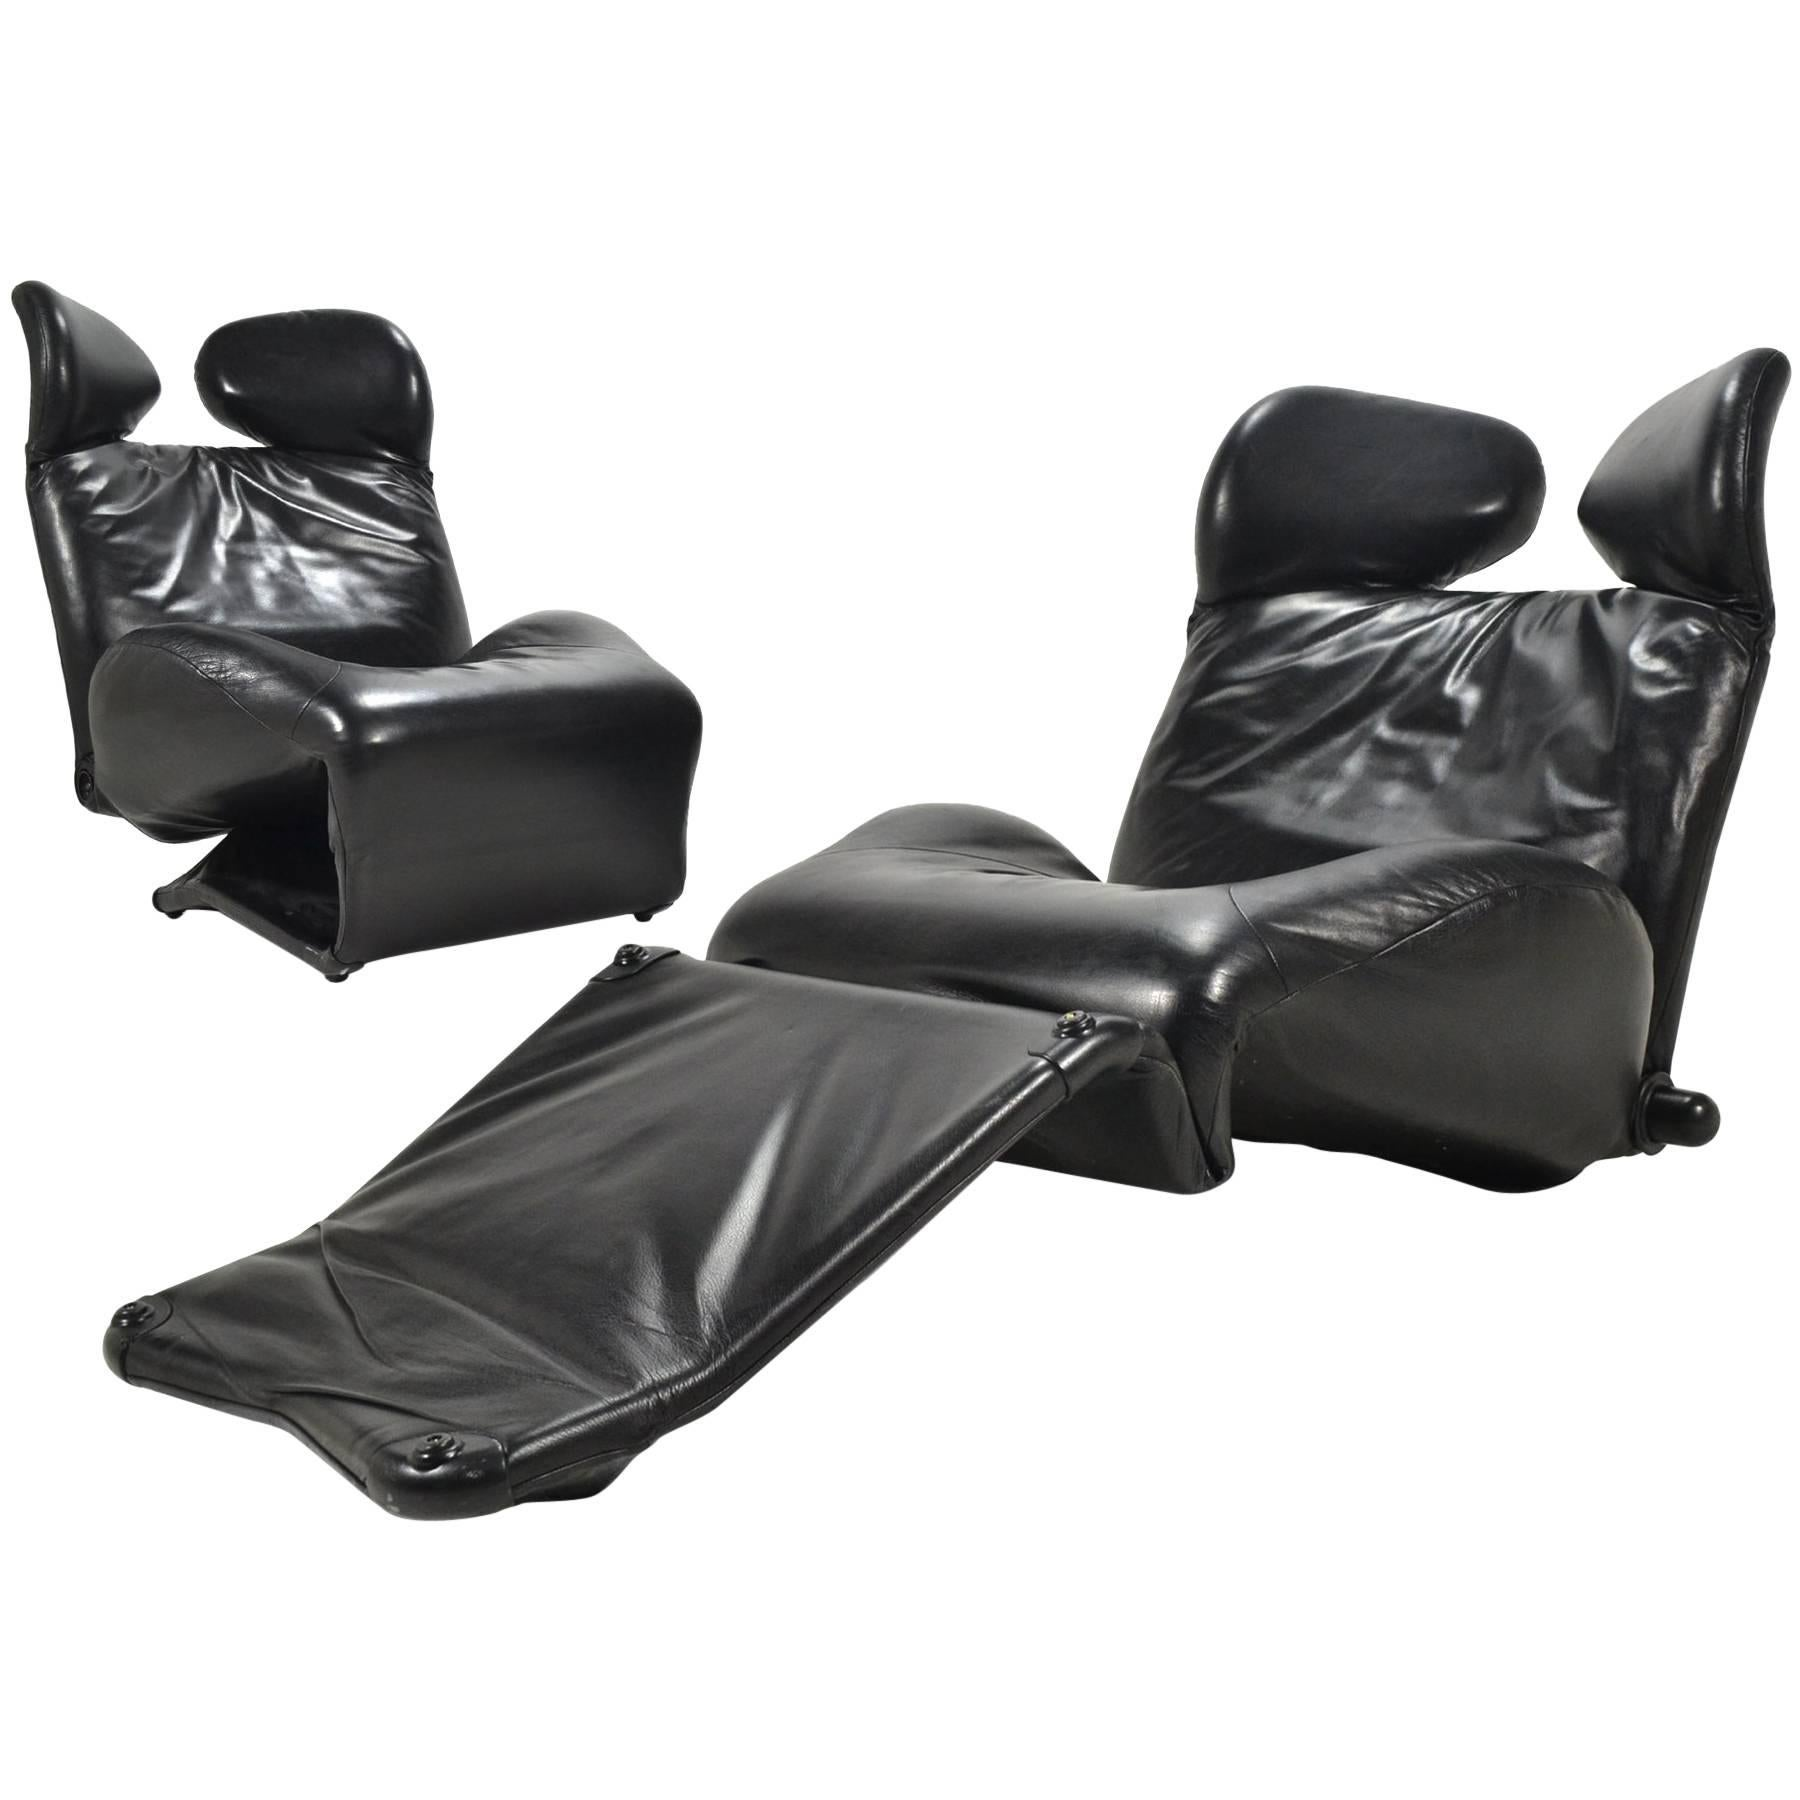 Toshiyuki Kita Wink Lounge Chairs By Cassina